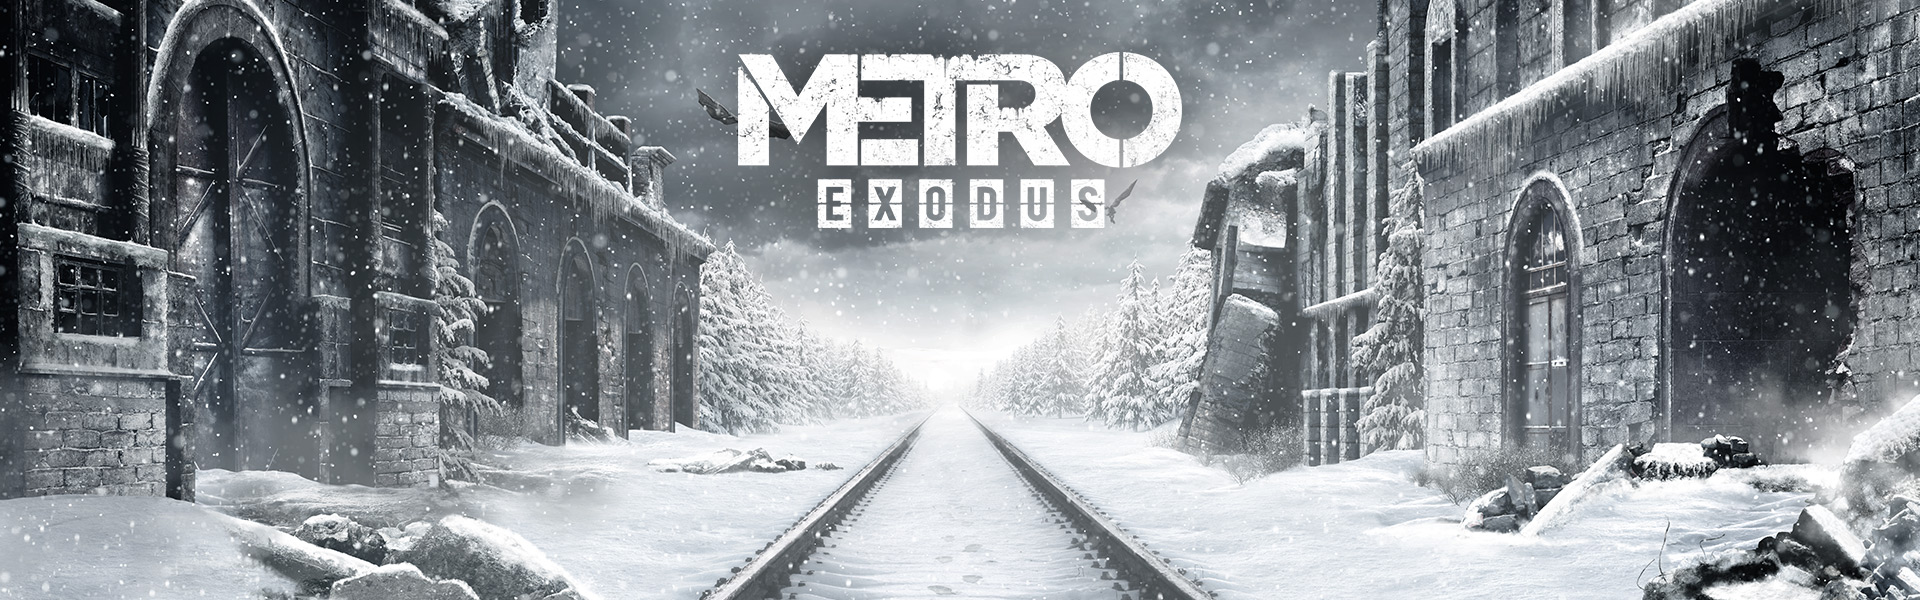 Metro Exodus, snow covered train tracks in Russia with buildings on both sides